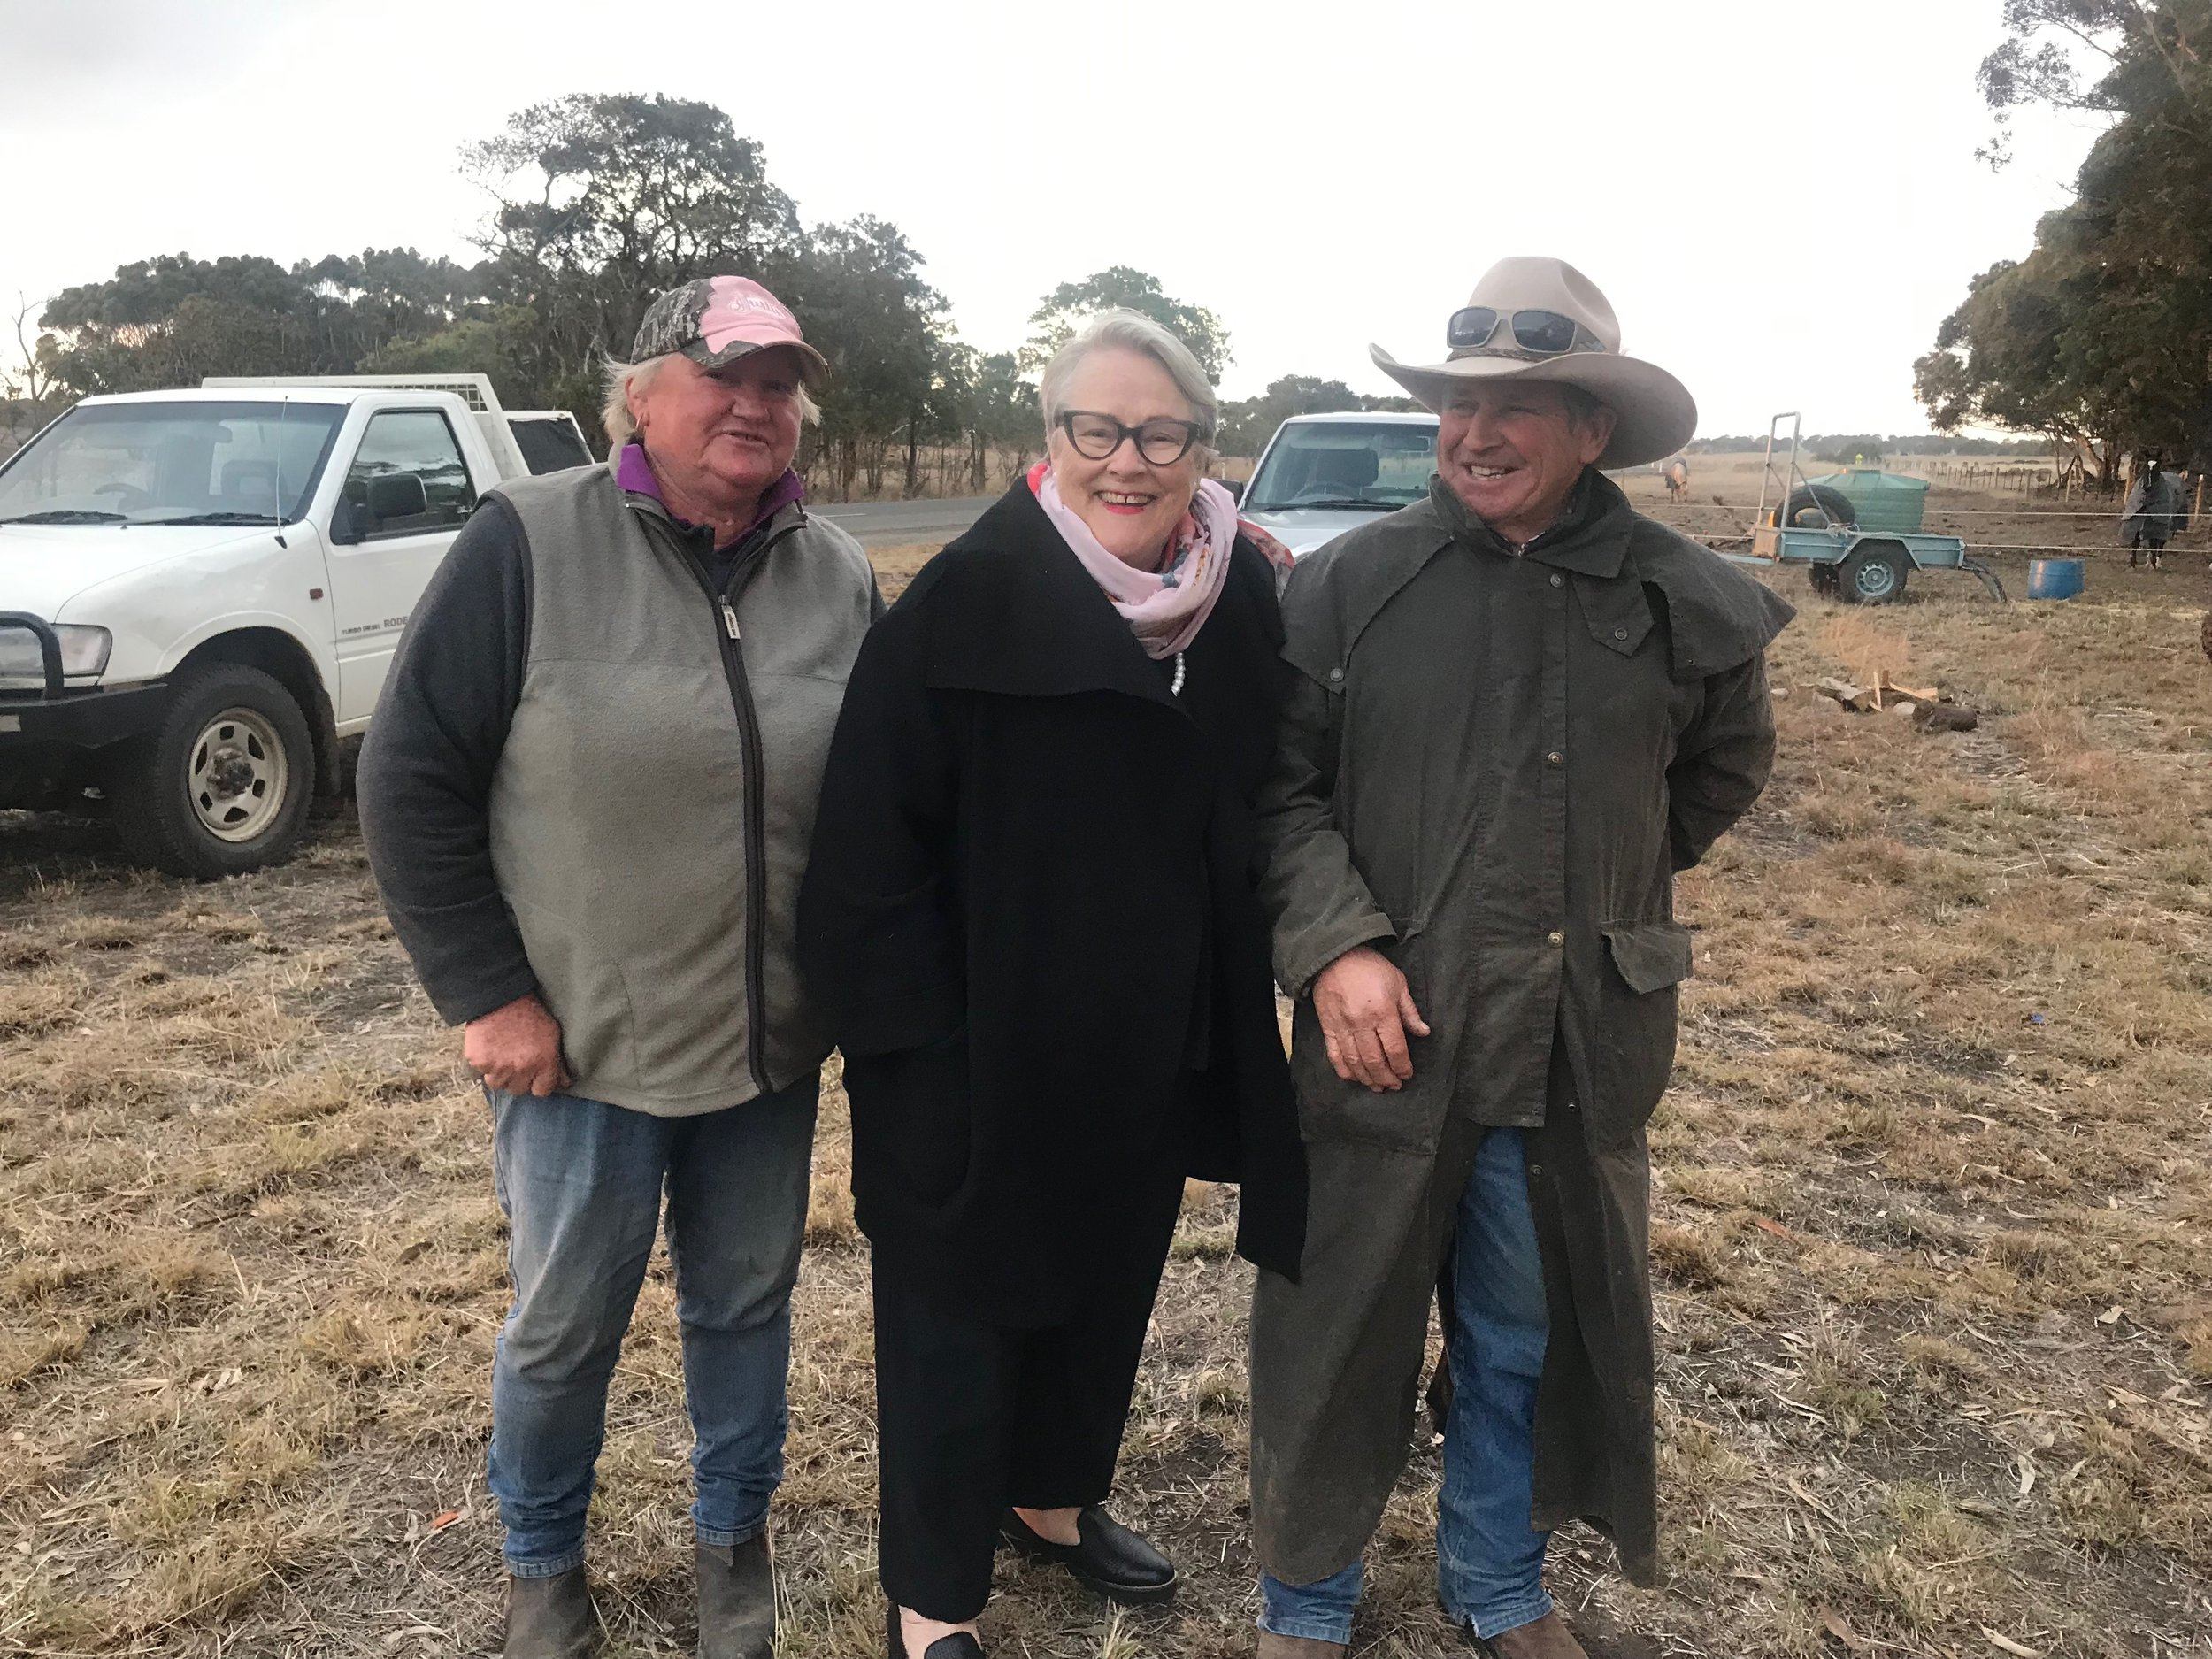 Drover John Wilson and his wife, Rhonda, who was determined to drove cattle from drought-stricken cattle from New South Wales, but was forced out by state government departments.